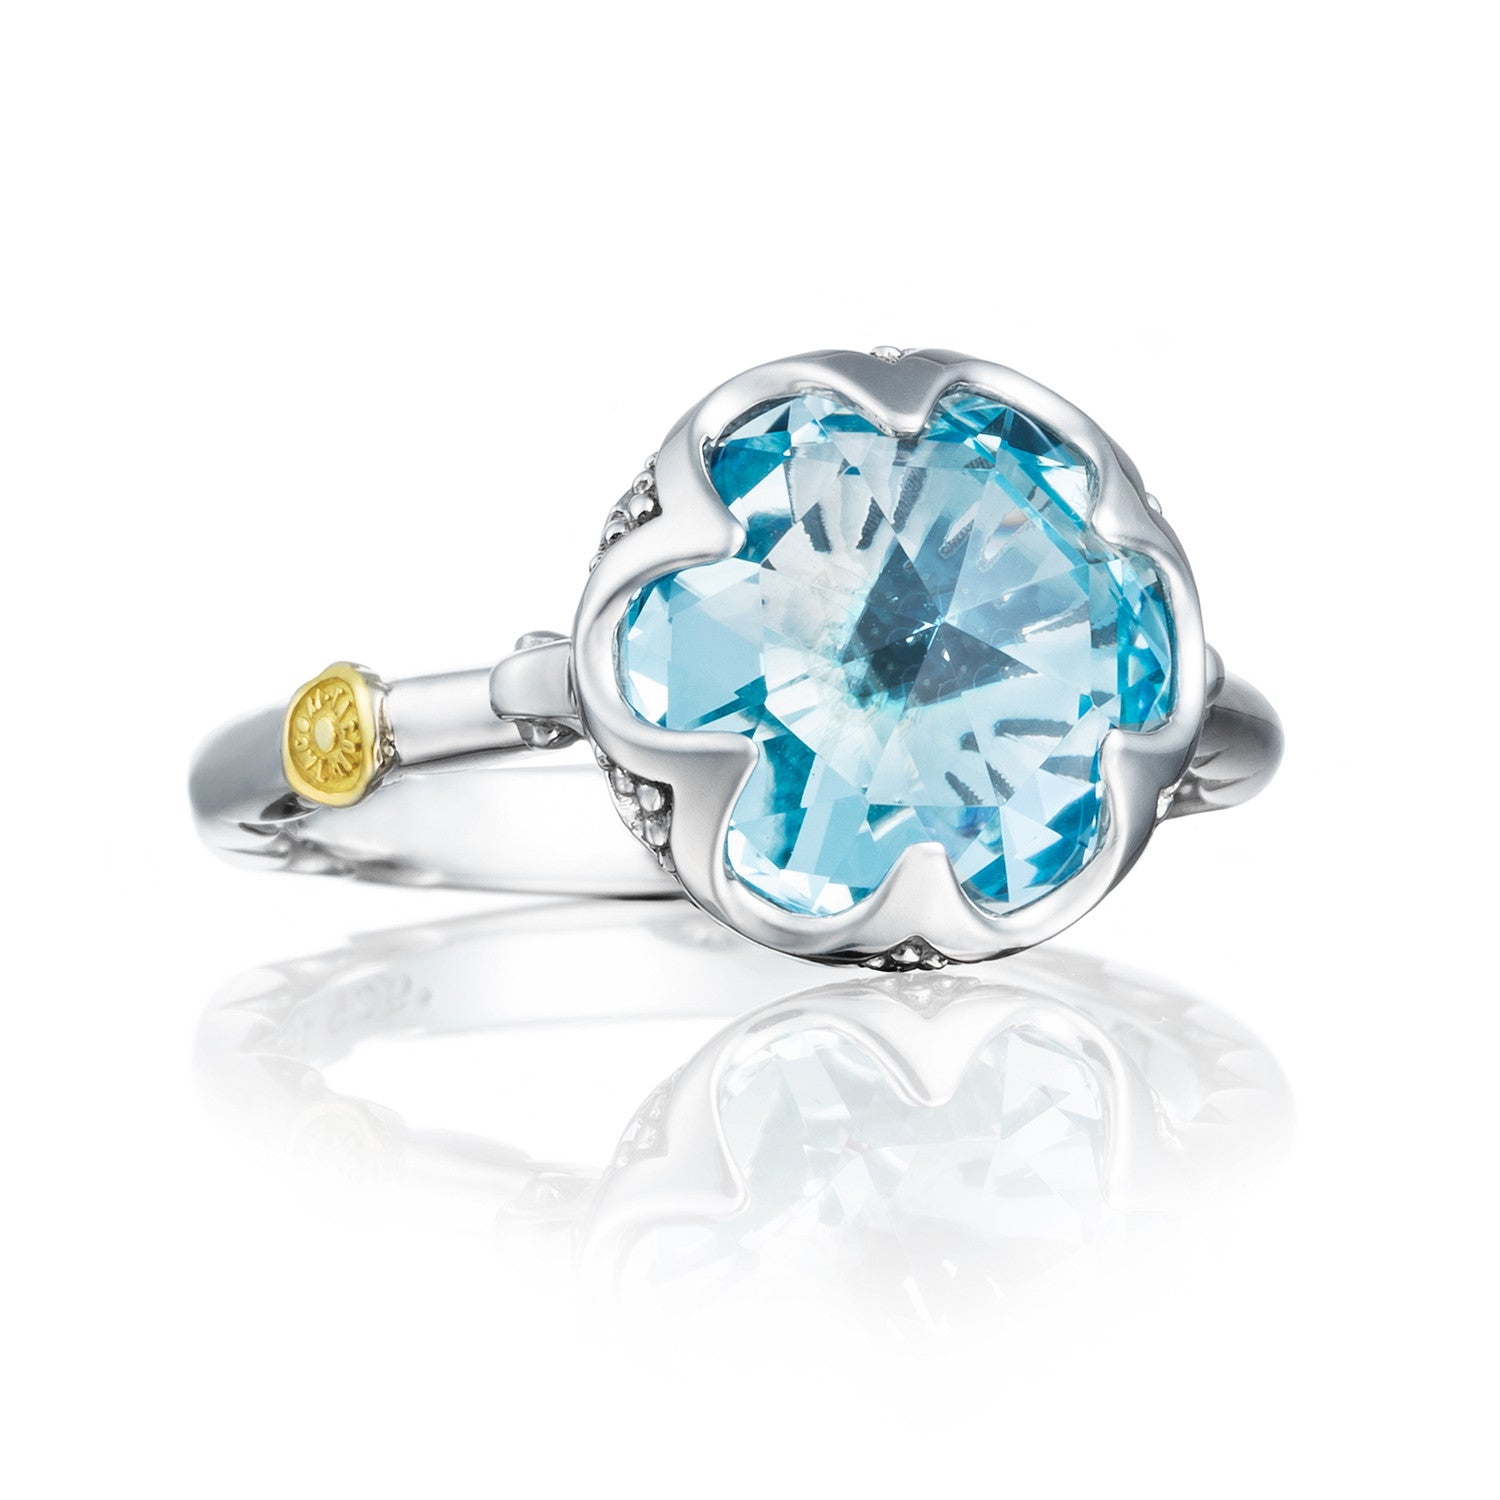 georg from berry blue jensen s jewellery image sterling topaz savannah amp rings jewellers silver ring dress